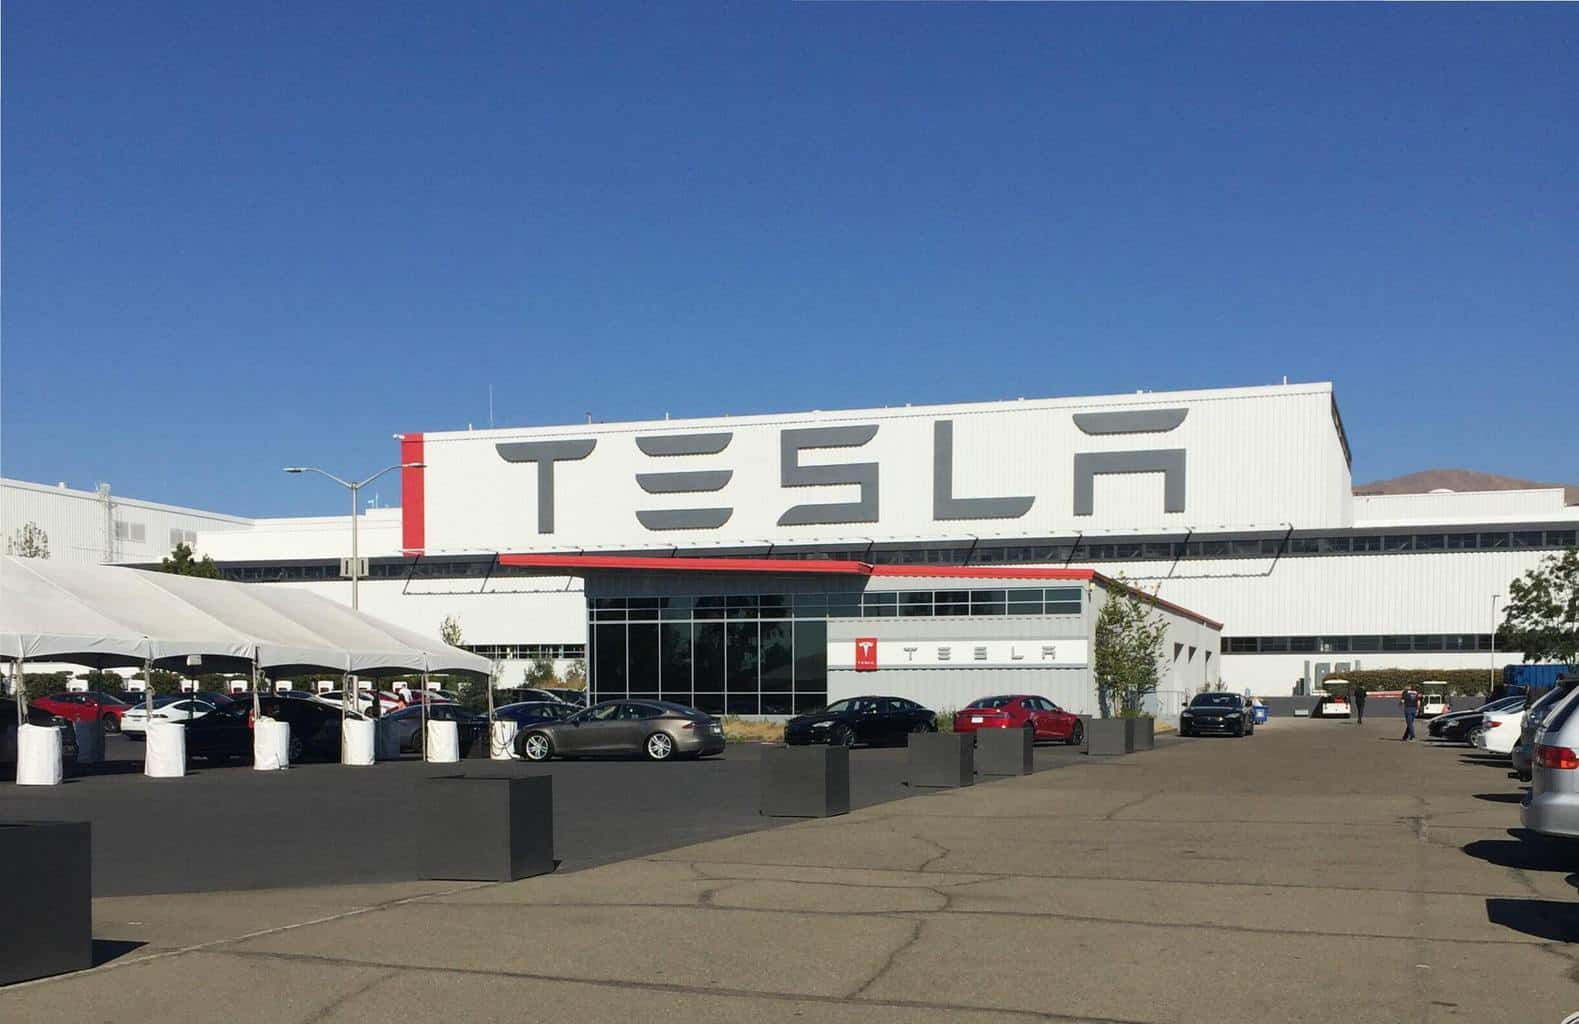 Tesla Motors Inc (TSLA) Factory Freemont, California